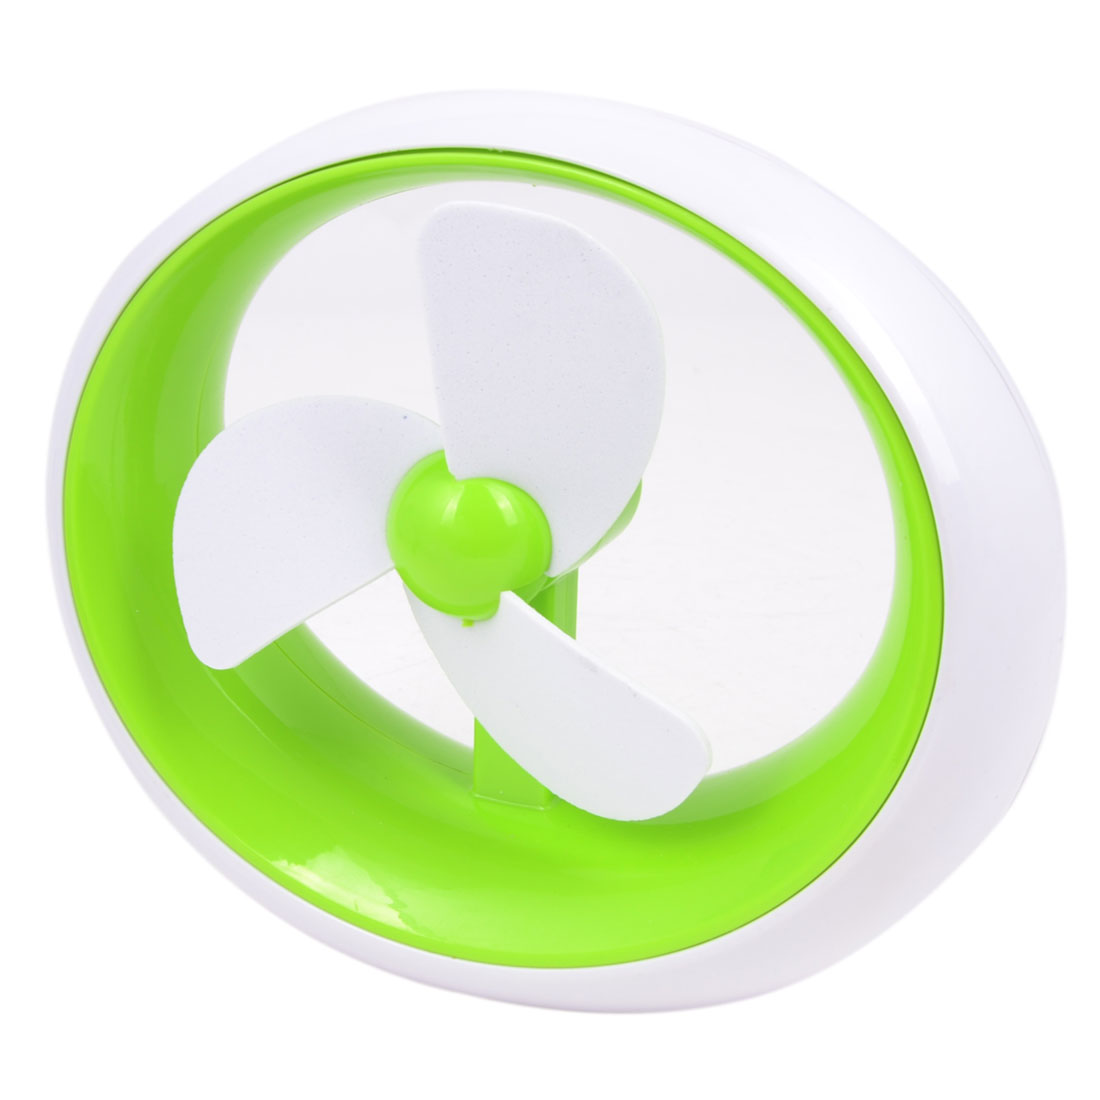 Green White Plastic Oval Battery USB Power PC Laptop Cooling Fan